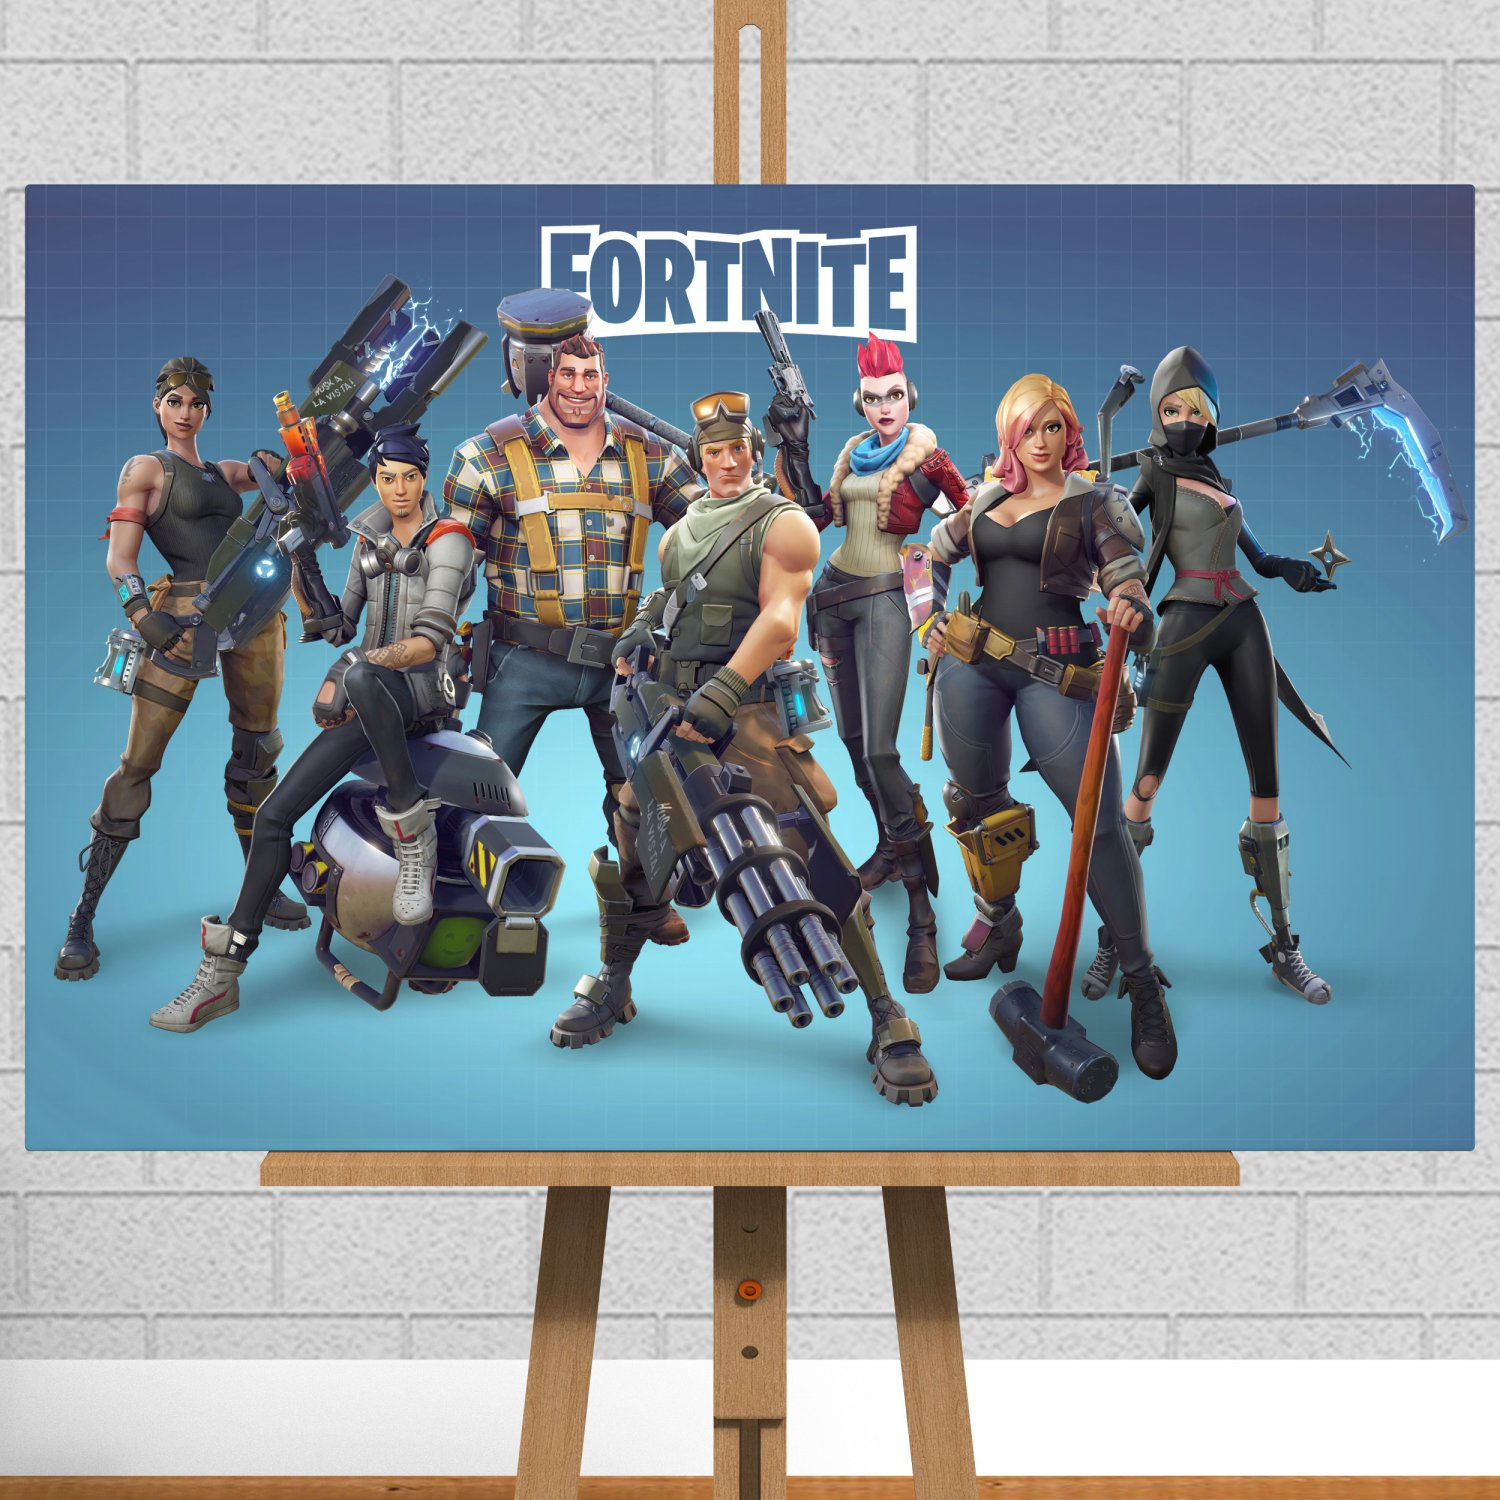 """Fortnite Games Framed Canvas Print / Picture - 30""""x20"""" (76cm x 51cm Approx)"""